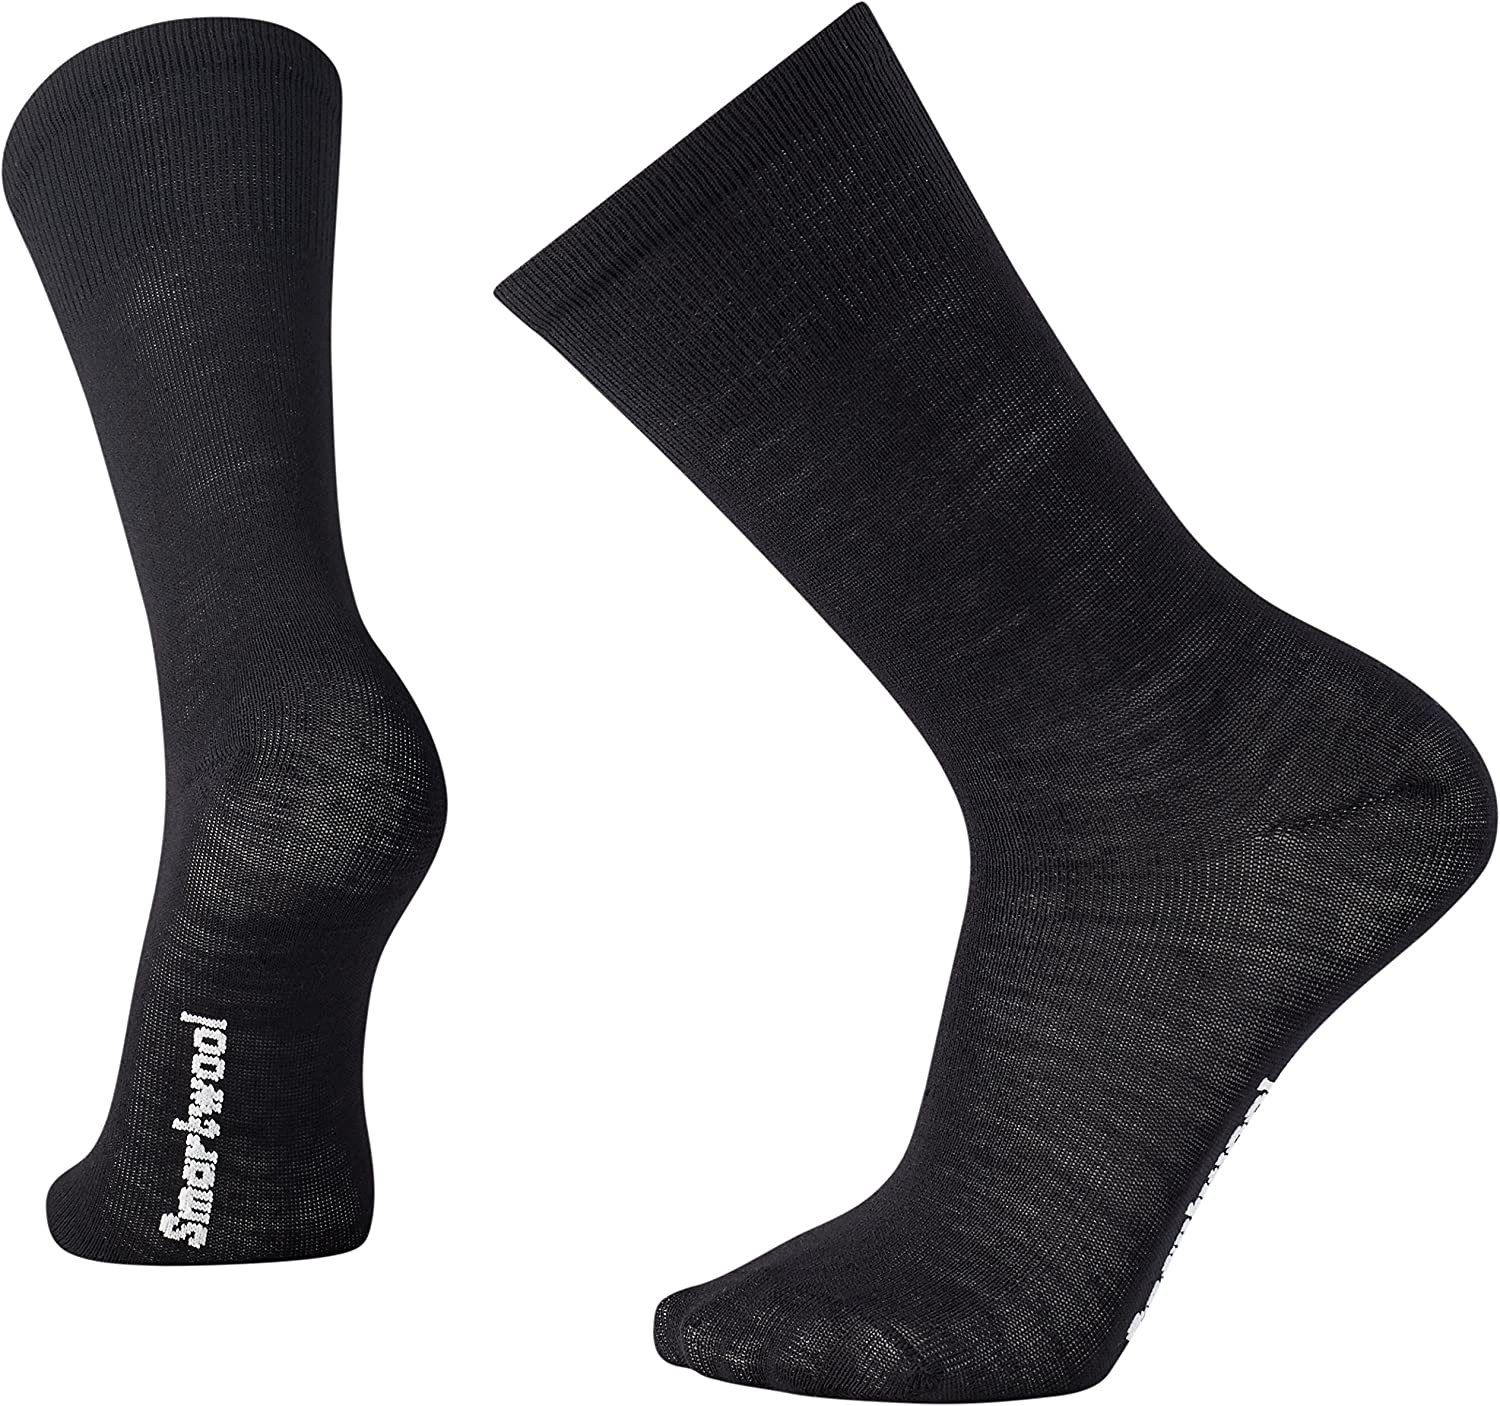 Super special price Smartwool Hiking lowest price Liner Crew Socks Light Ultra Wool - Performance